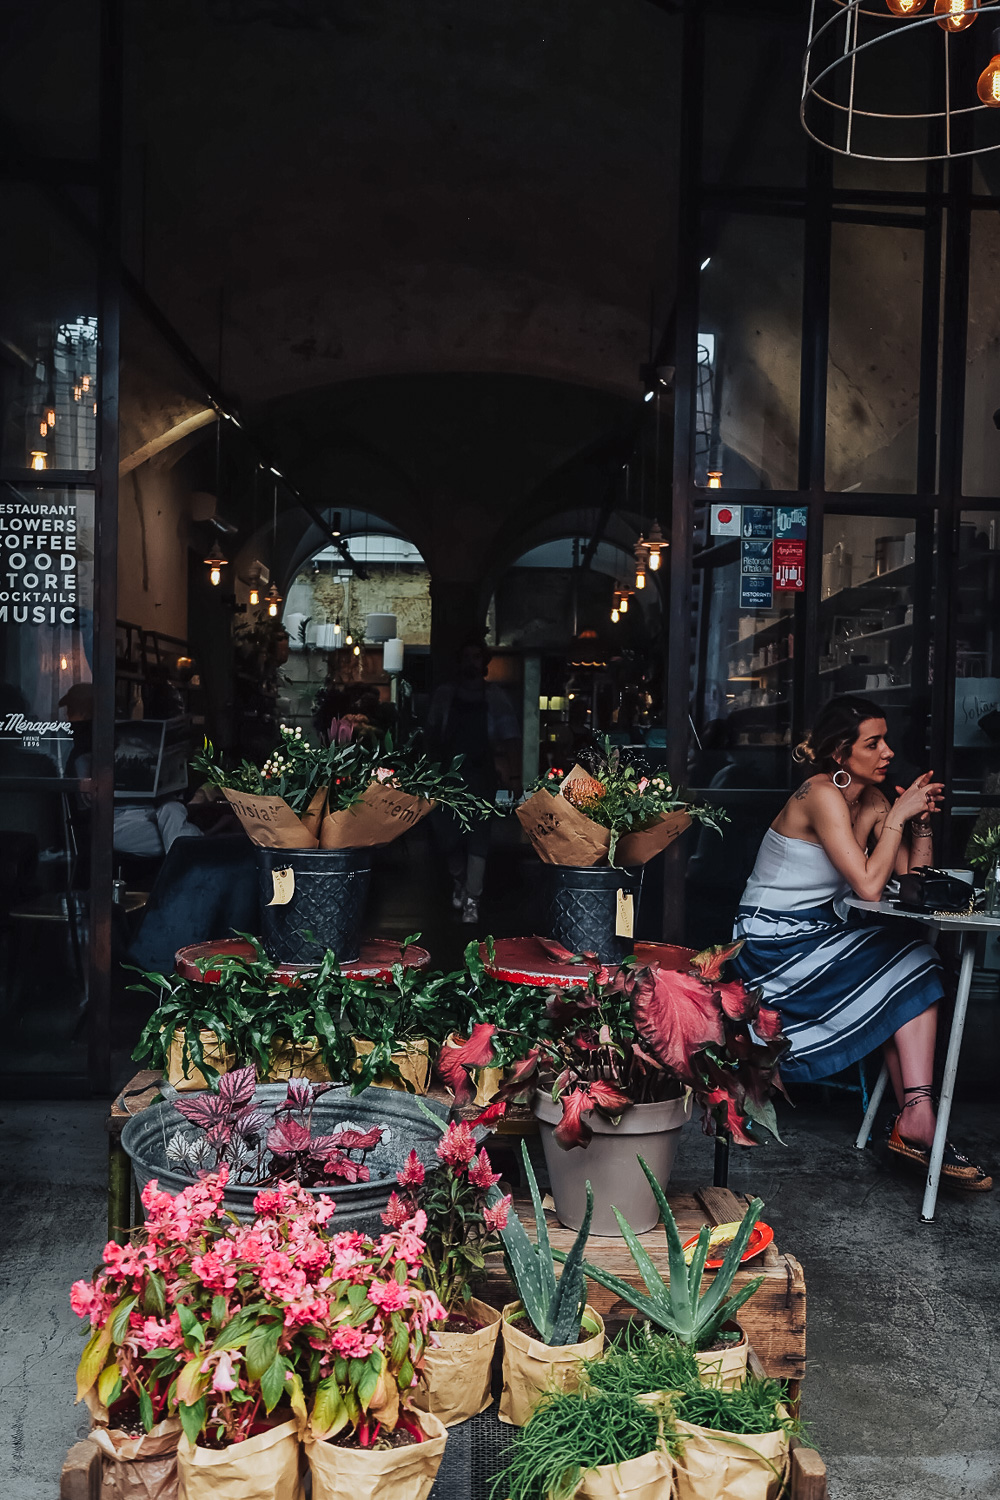 La Ménagère bar, restaurant and florist shop | How to Spend 48 Hours in Florence | Tuscany, Italy | Mondomulia